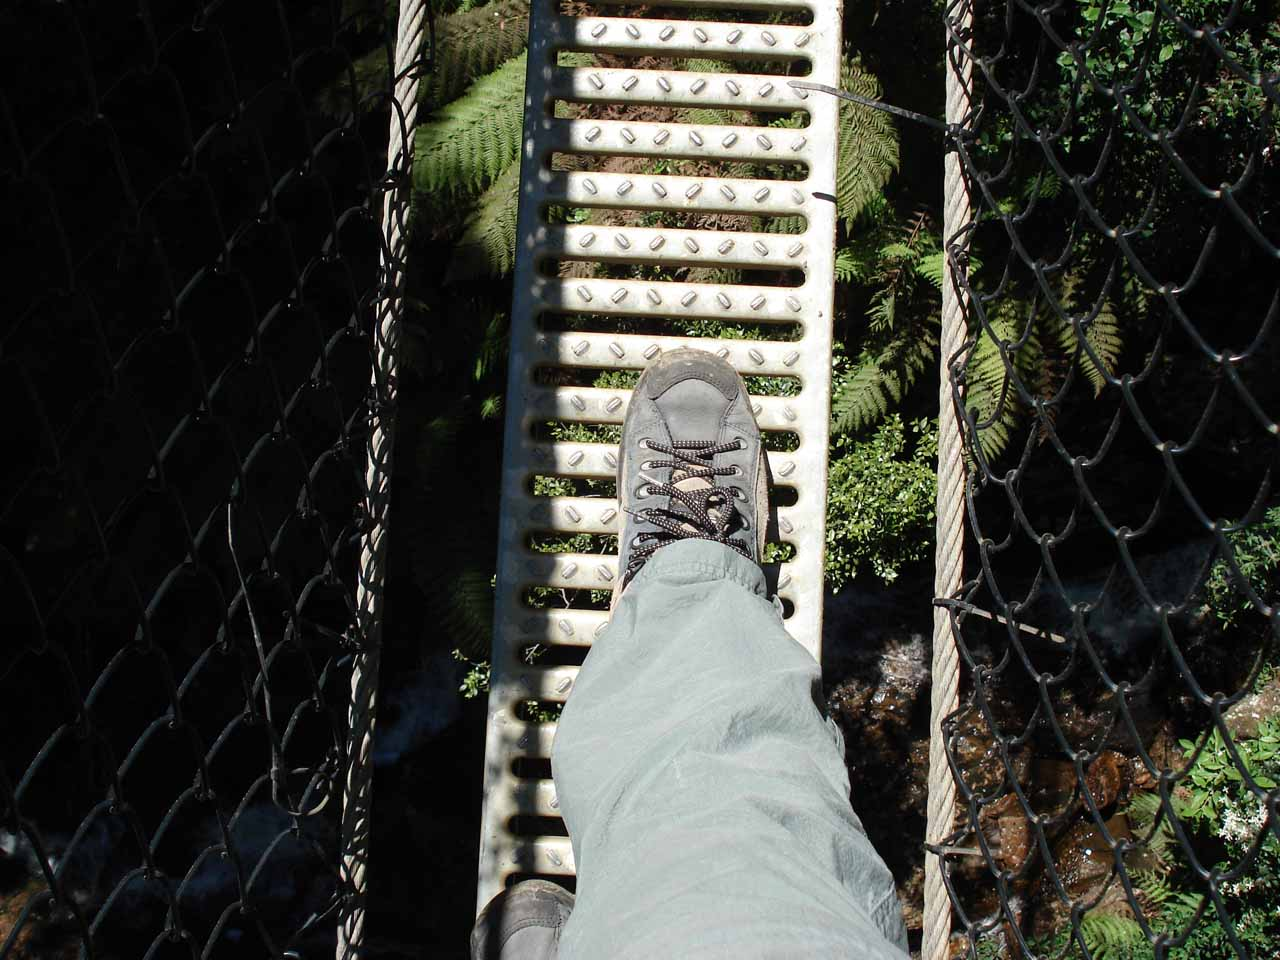 The suspension bridge was barely wide enough to accommodate the width of both of Julie's feet. Note how far down Avon Creek or Montezuma Creek was below the bridge